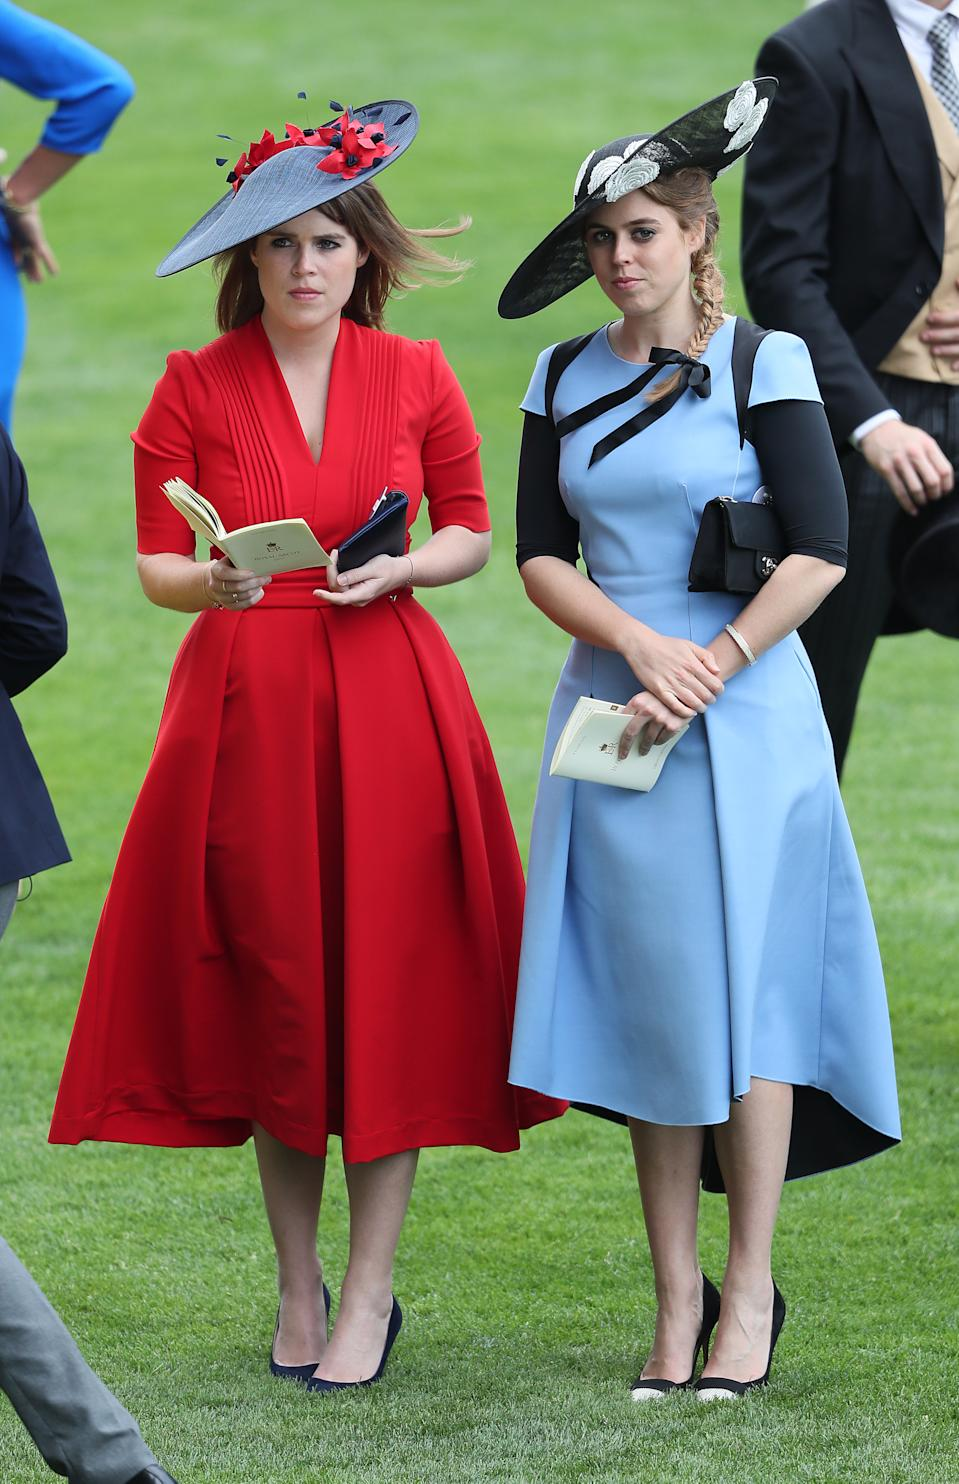 <p>In 2017, the sisters opted for similar silhouettes for their racing outfits, cinched at the waist and with A-line skirts. Even their hats looked alike. So we'd love for them to make a sijmilar show of unity this year. (PA Images)</p>